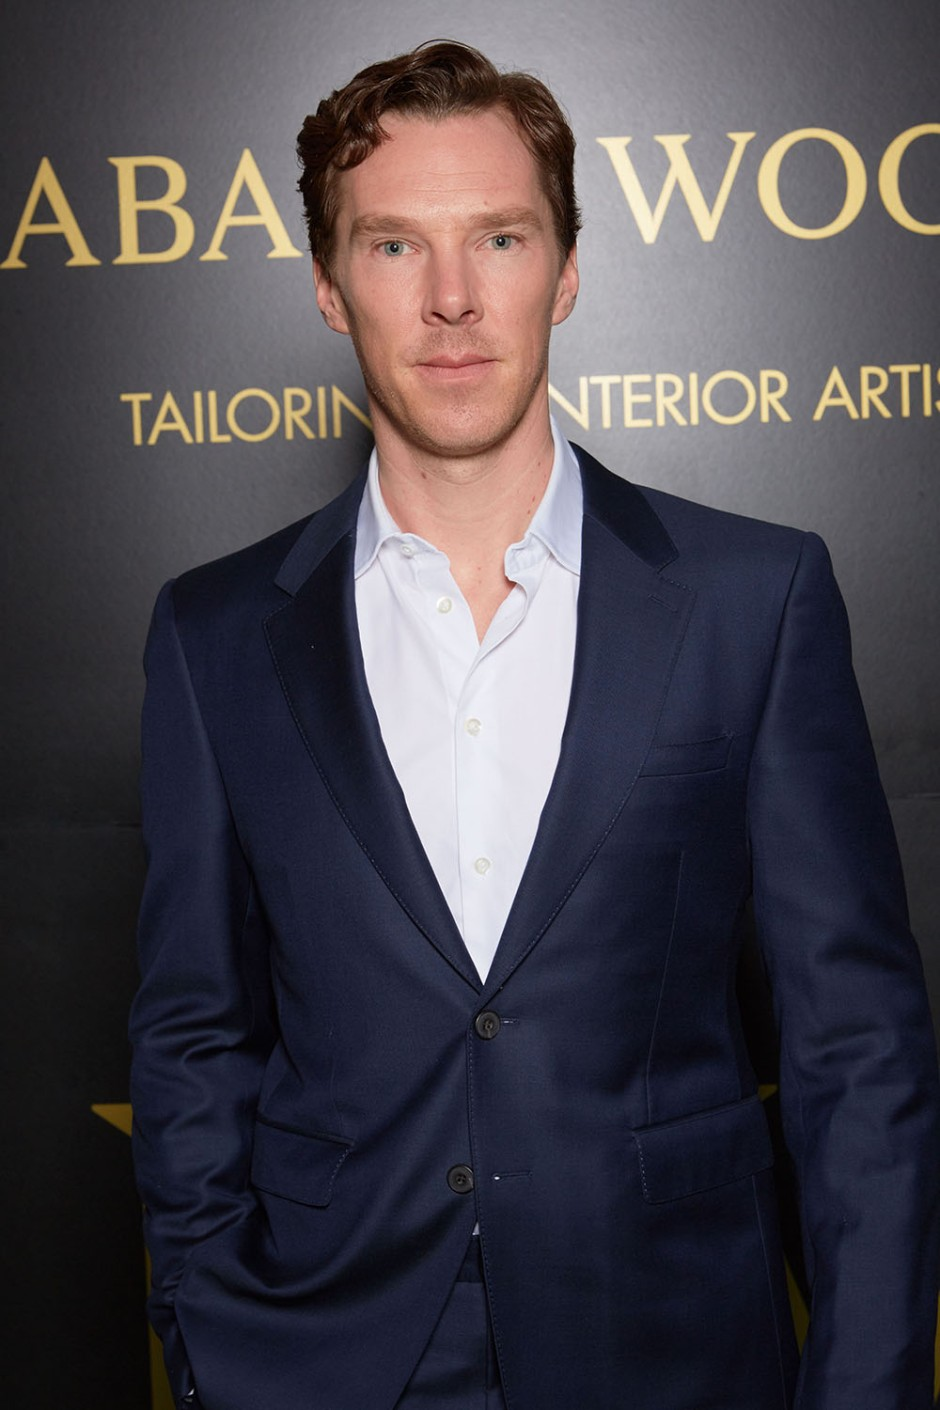 benedict cumberbatch - photo #49